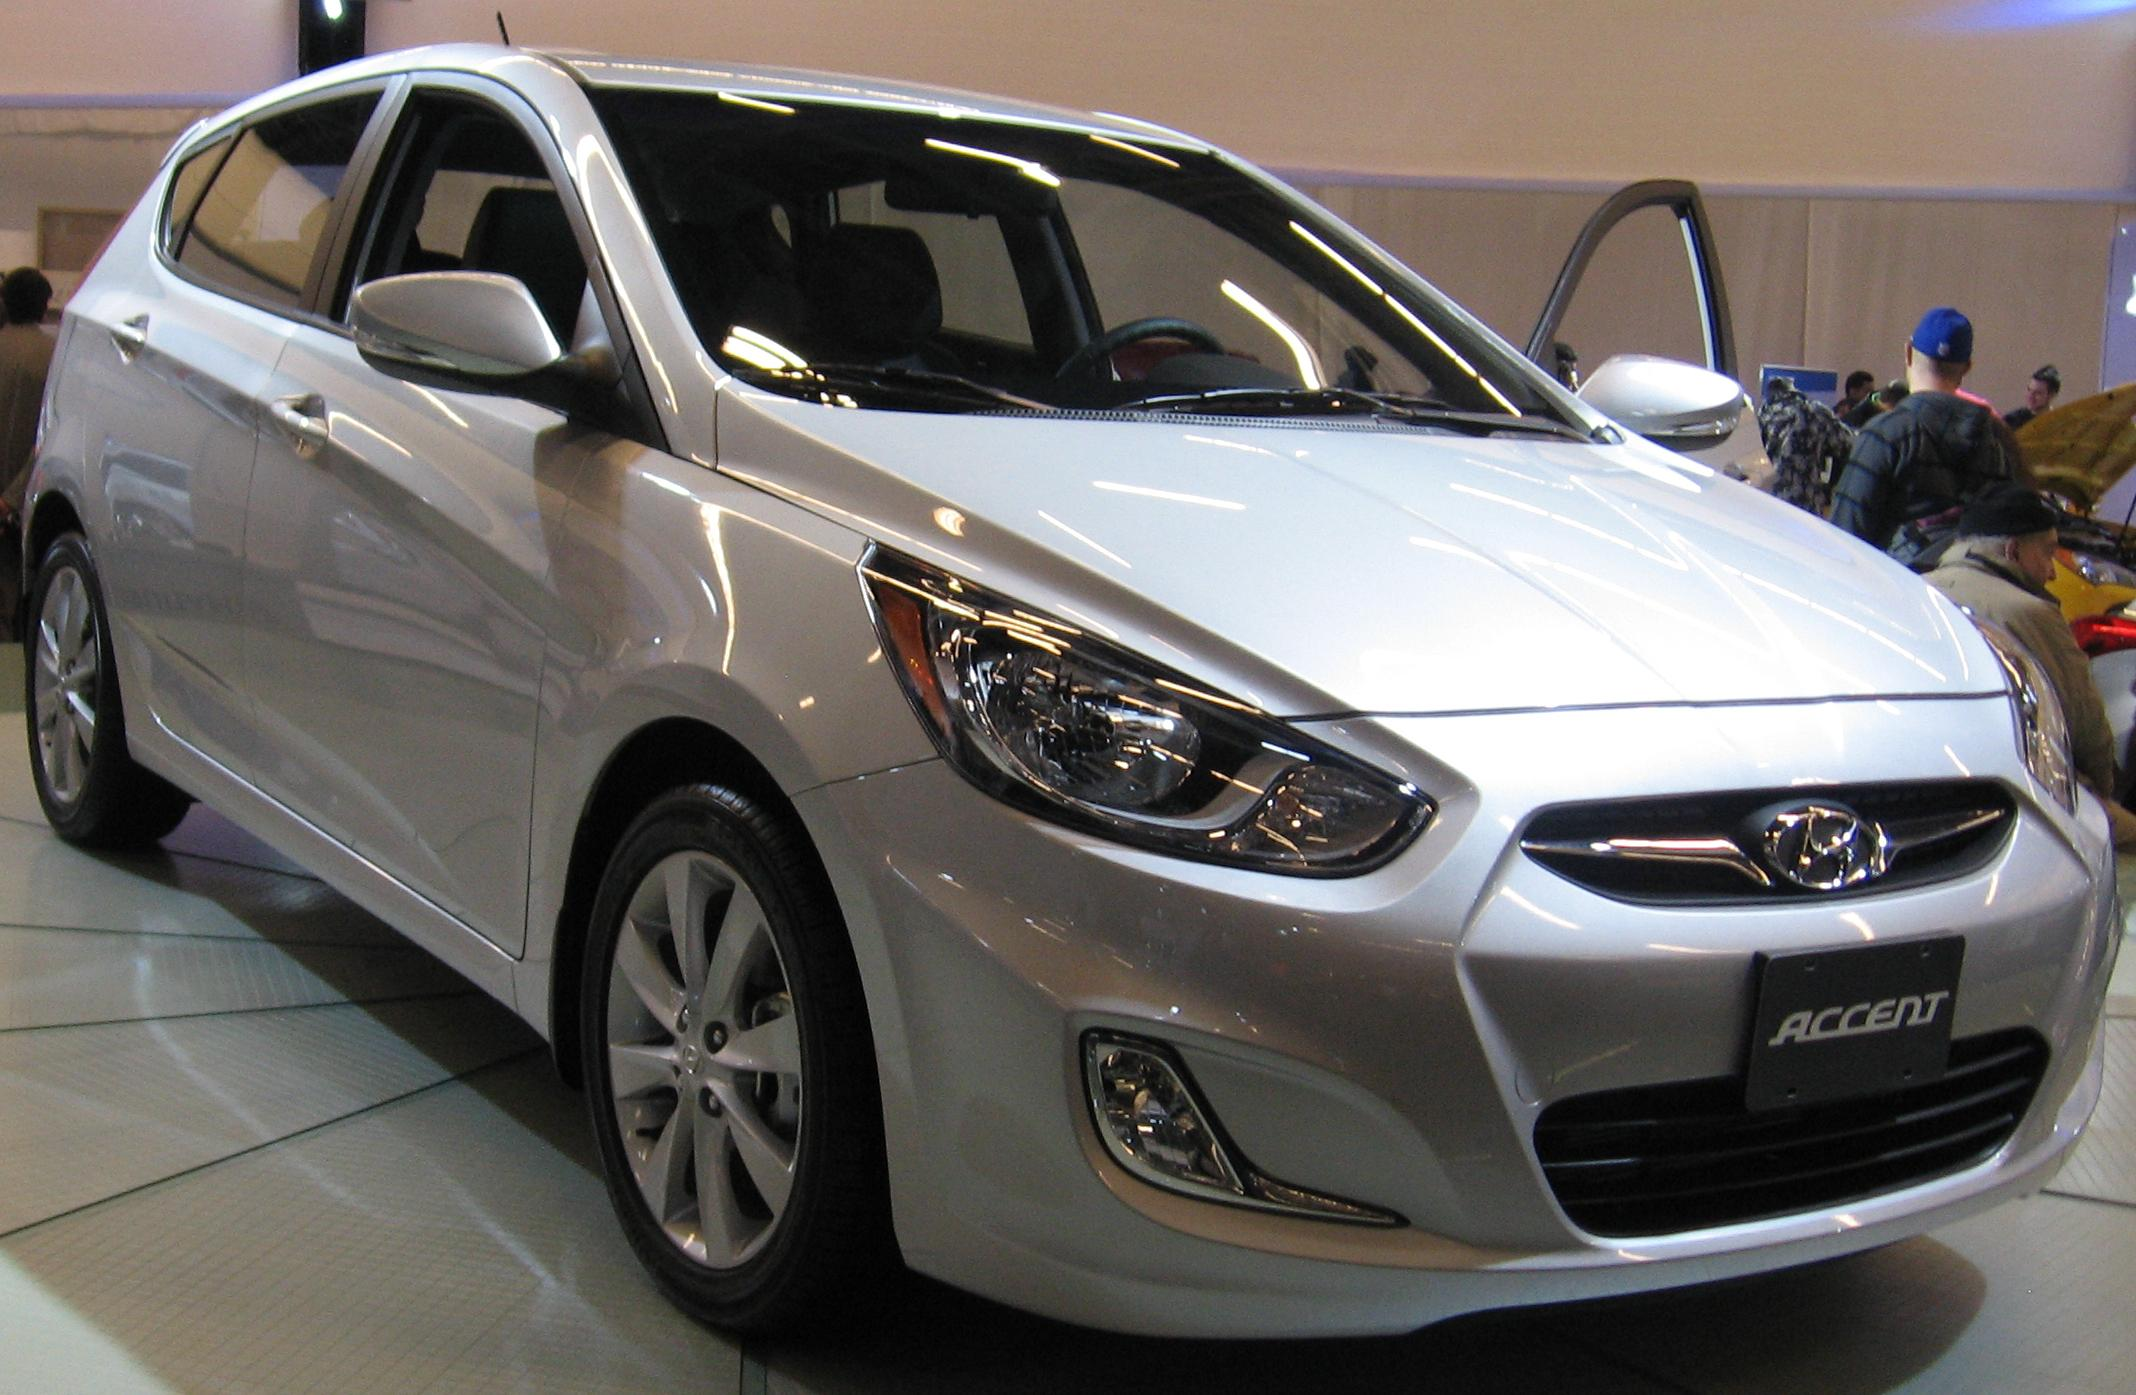 File12 Hyundai Accent Hatchback MIAS 11jpg Wikipedia